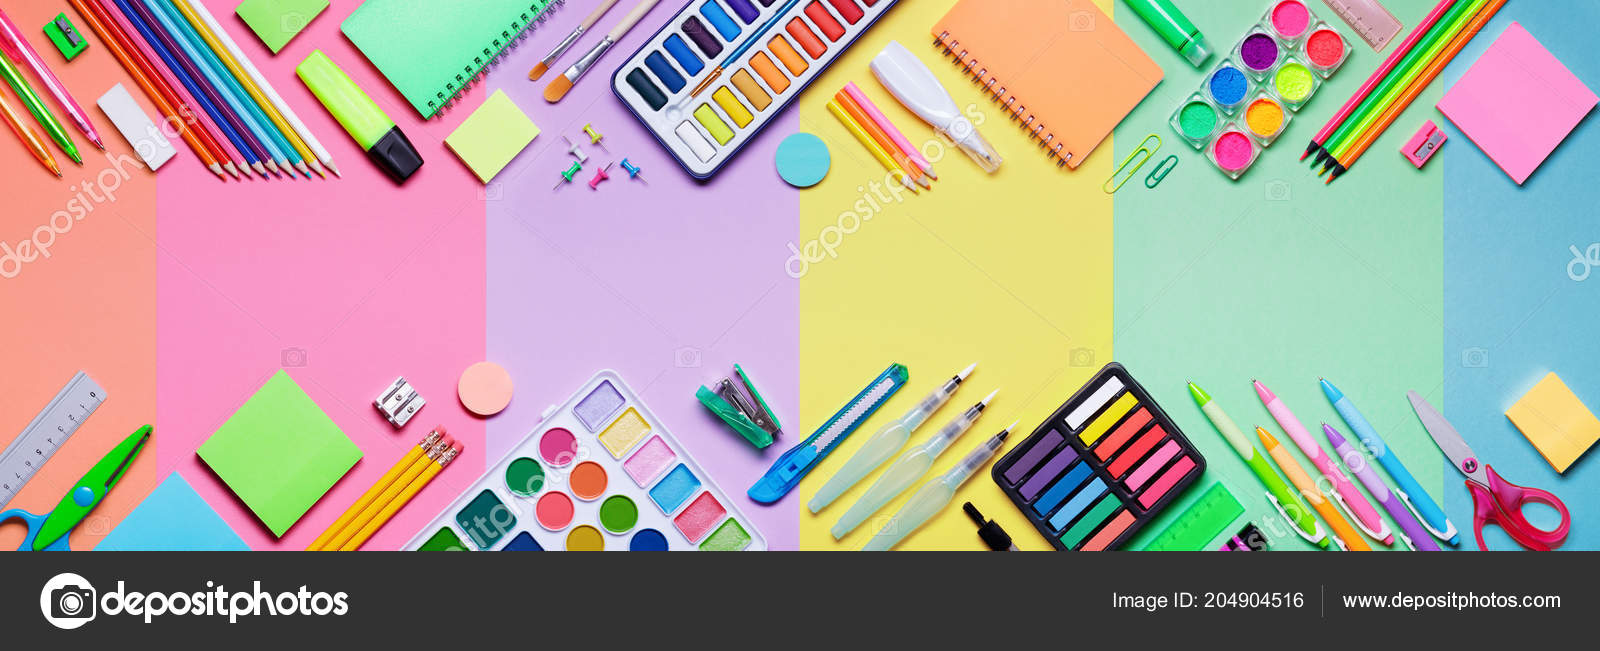 School Supplies Colorful Paper Background Education Banner Stock Photo C Rfphoto 204904516